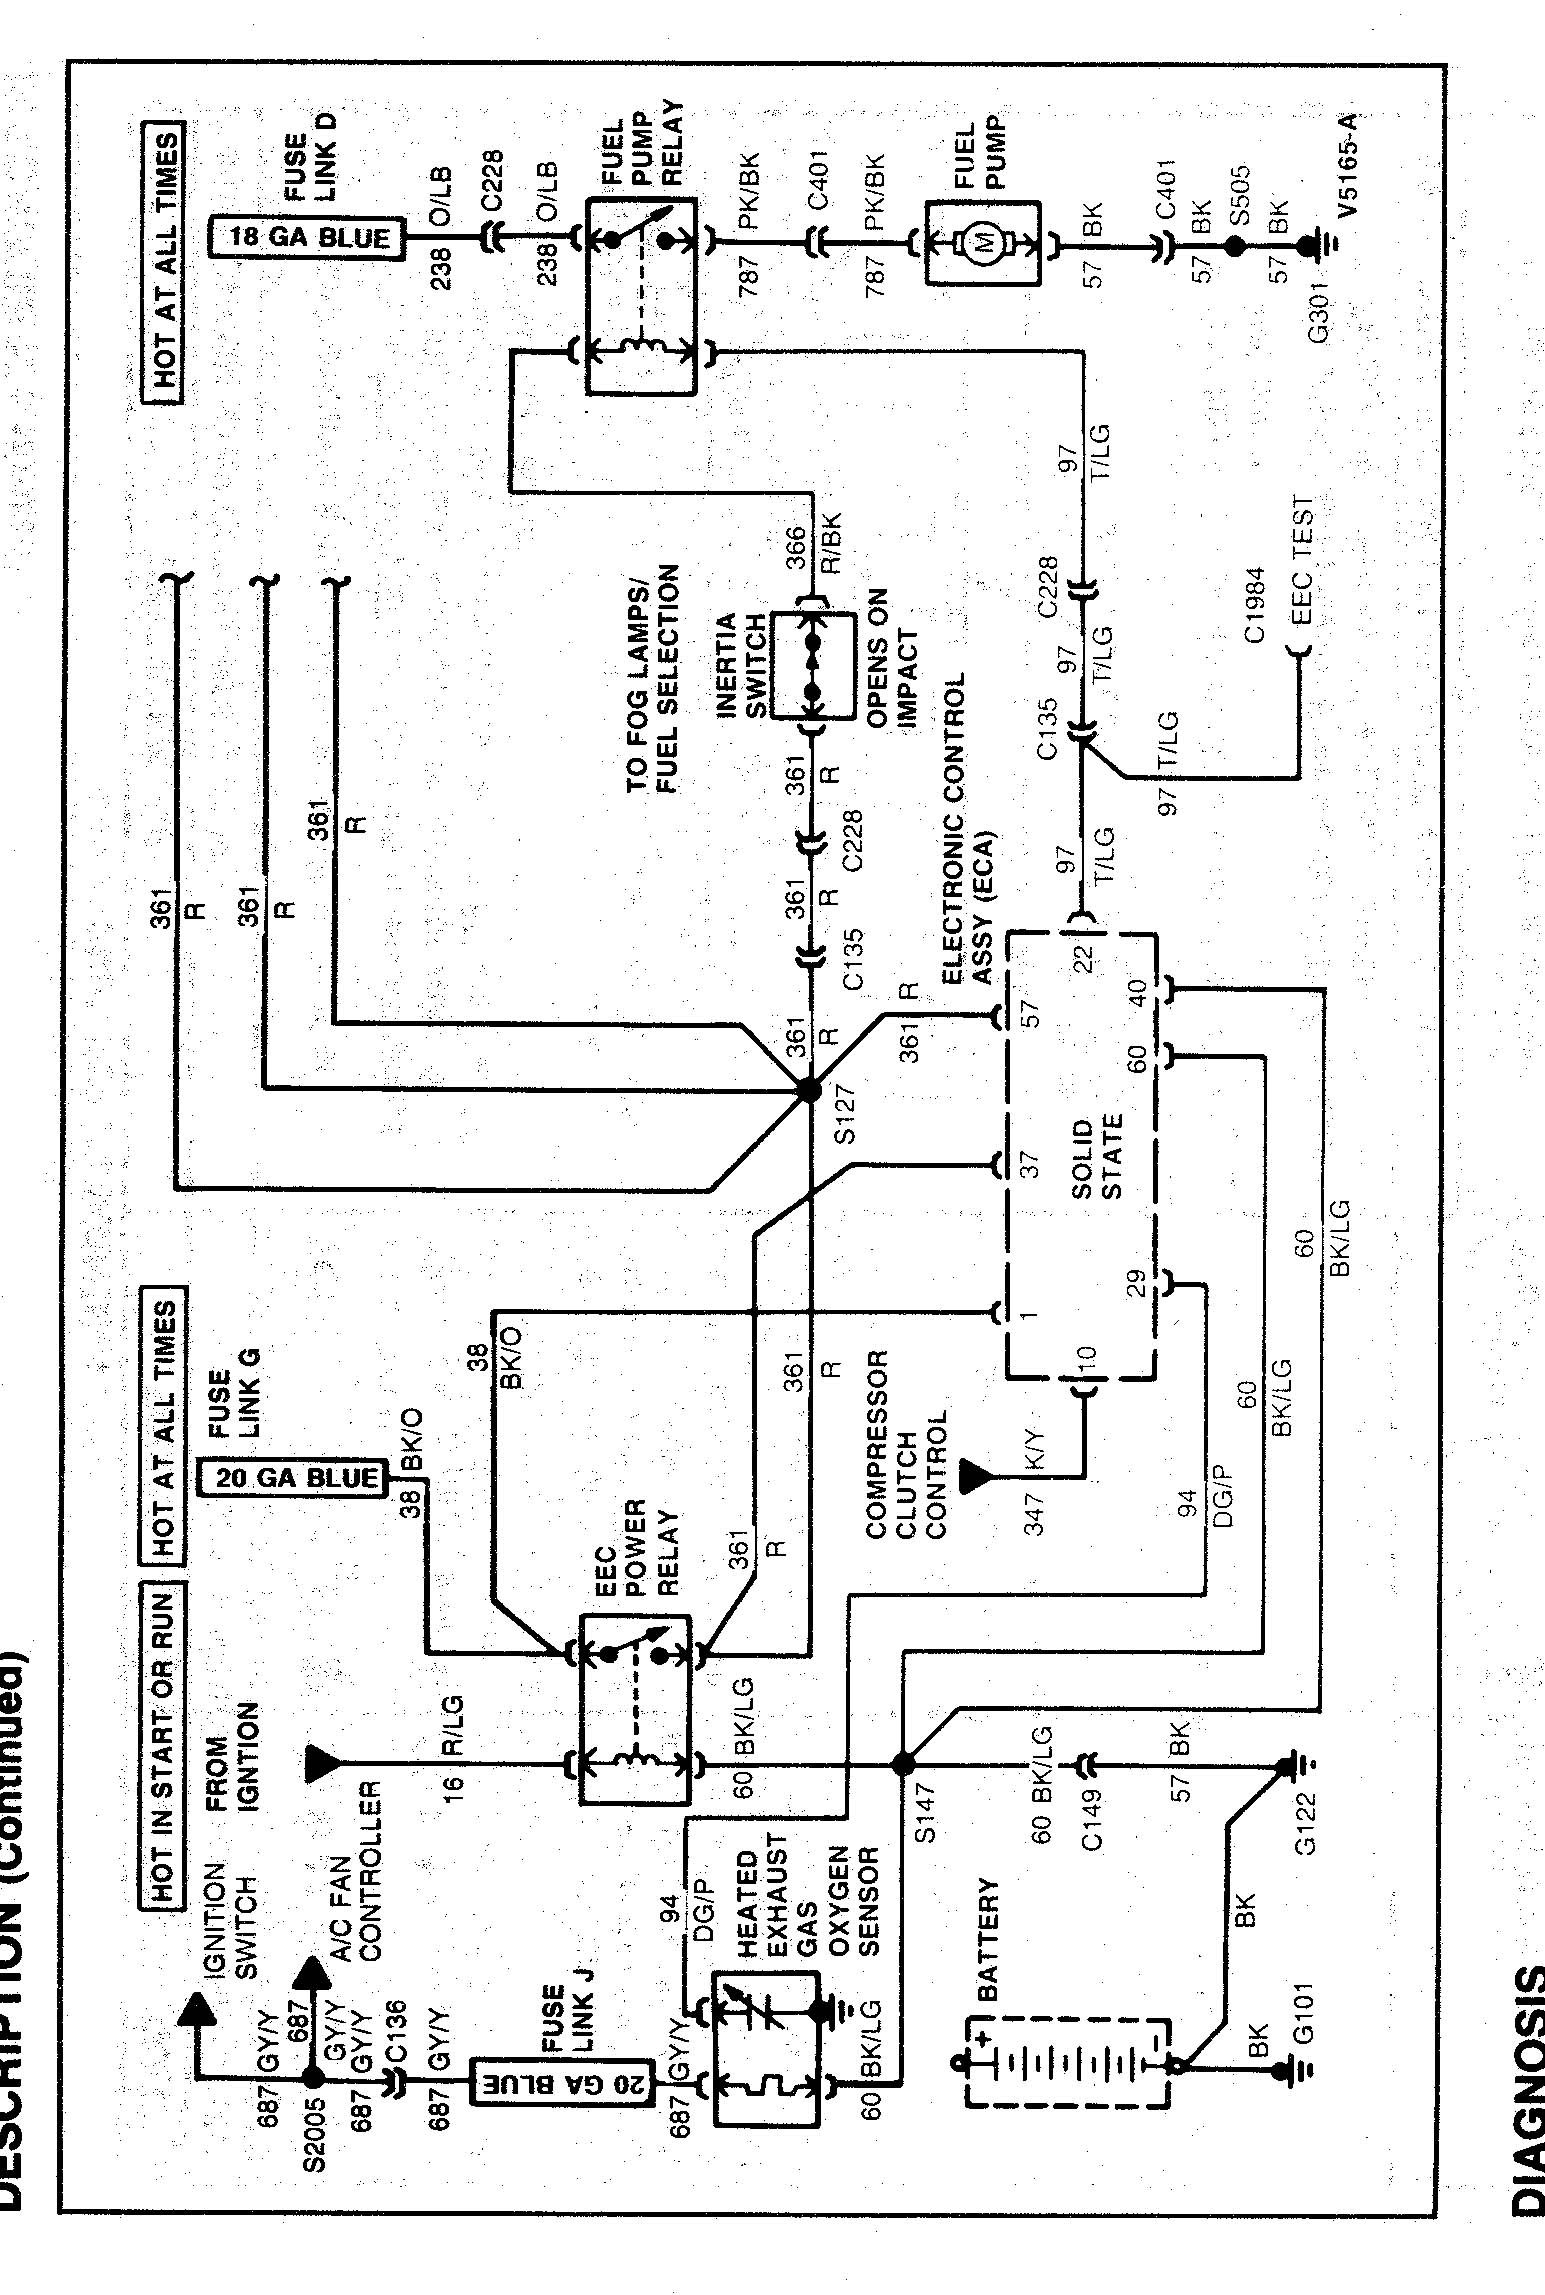 1979 Ford Mustang Wiring Diagram. Ford. Wiring Diagram Images